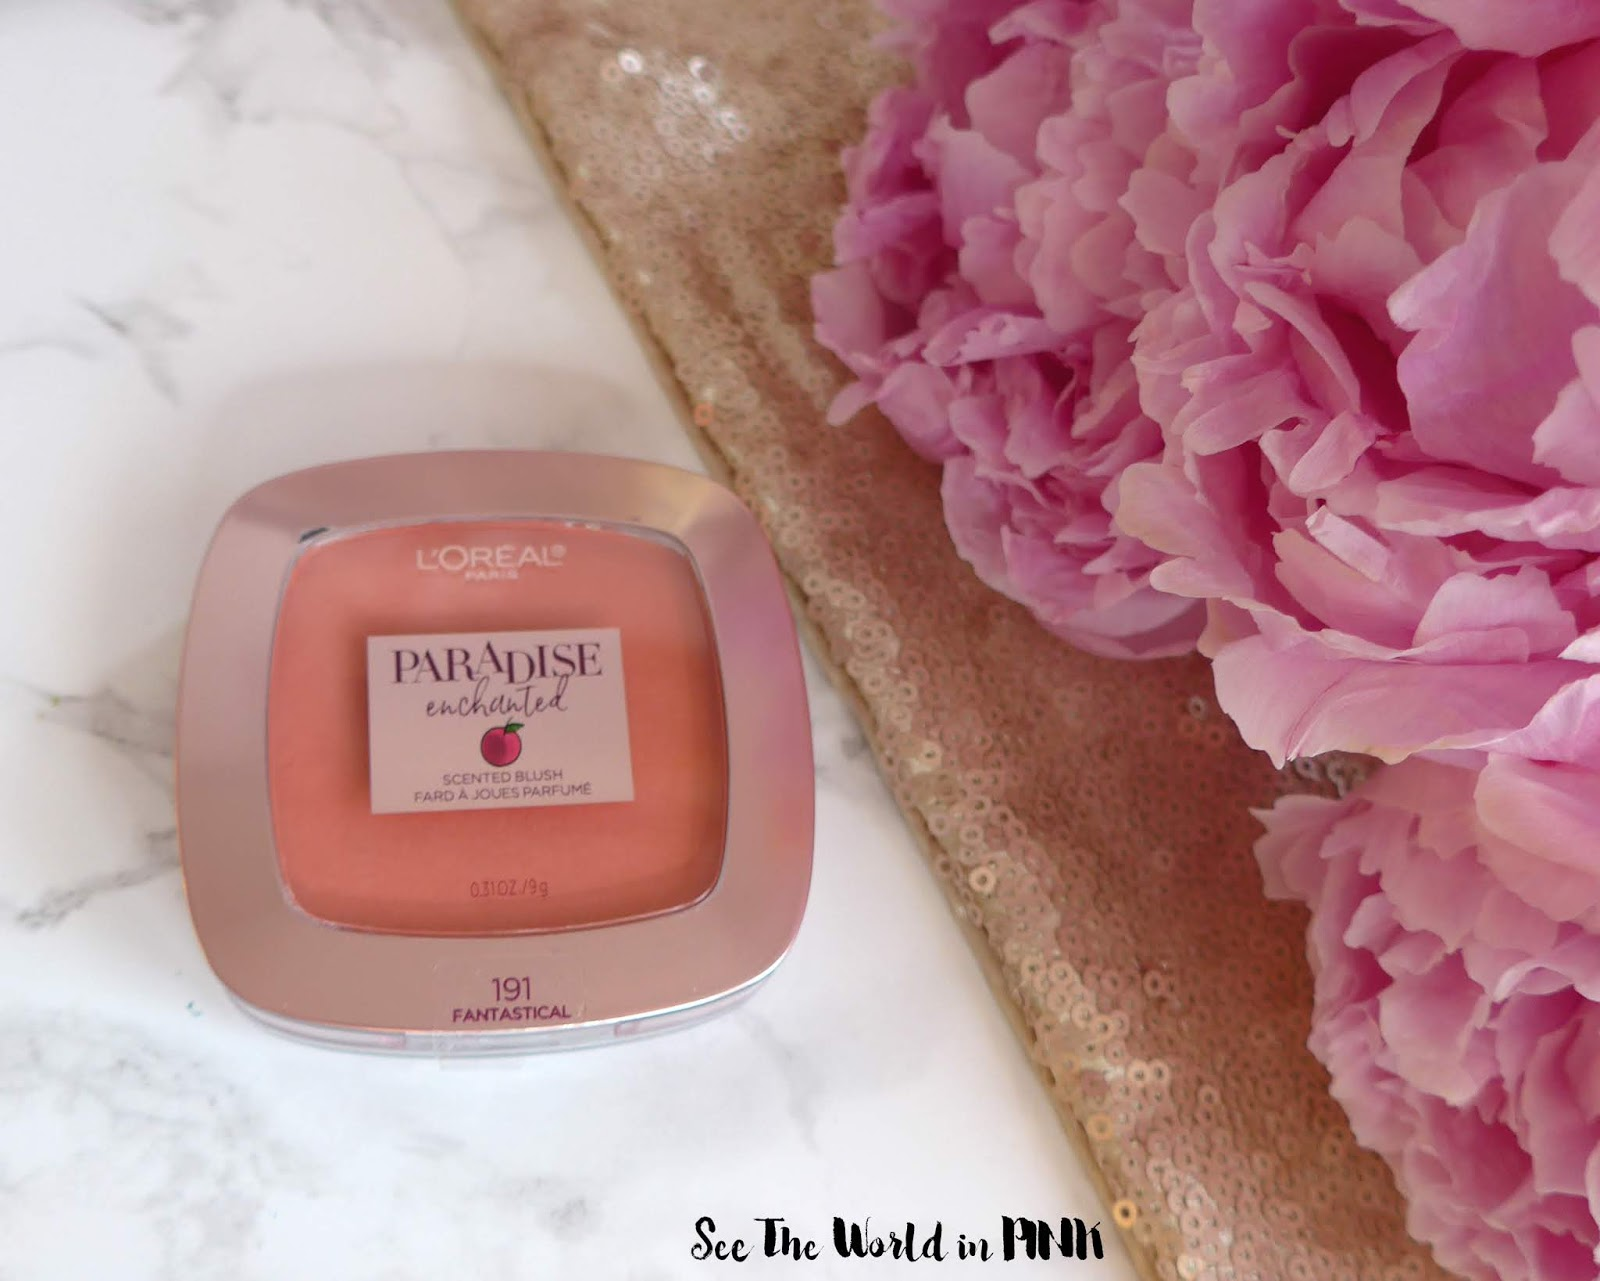 l'oreal paradise enchanted blush fantastical